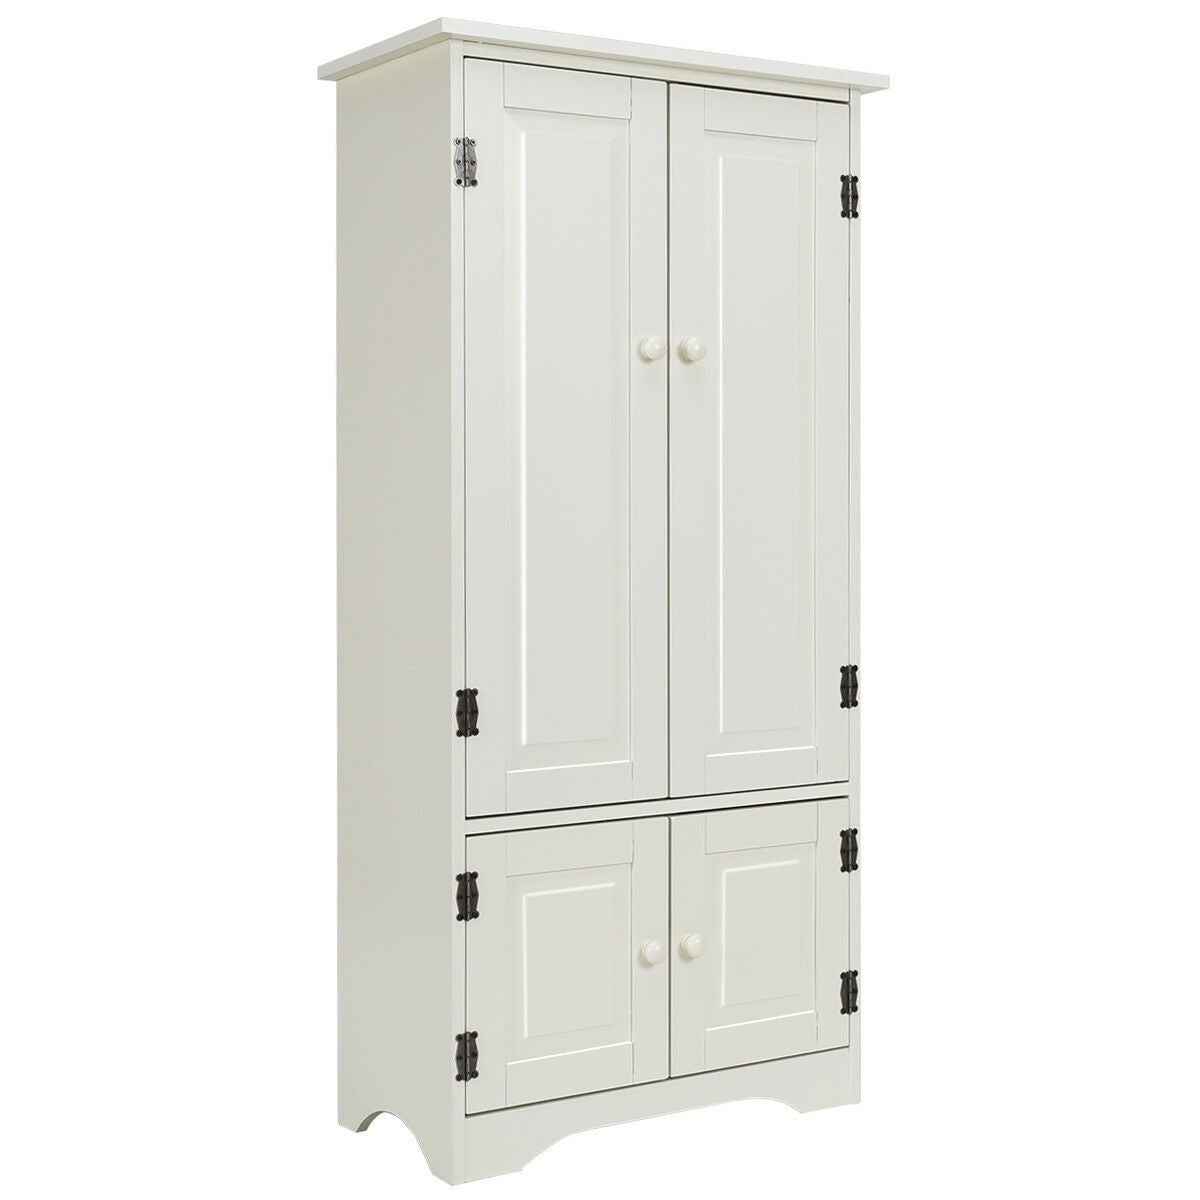 Wondrous Costway Accent Storage Cabinet Adjustable Shelves Antique 2 Door Floor Cabinet White Home Interior And Landscaping Ologienasavecom